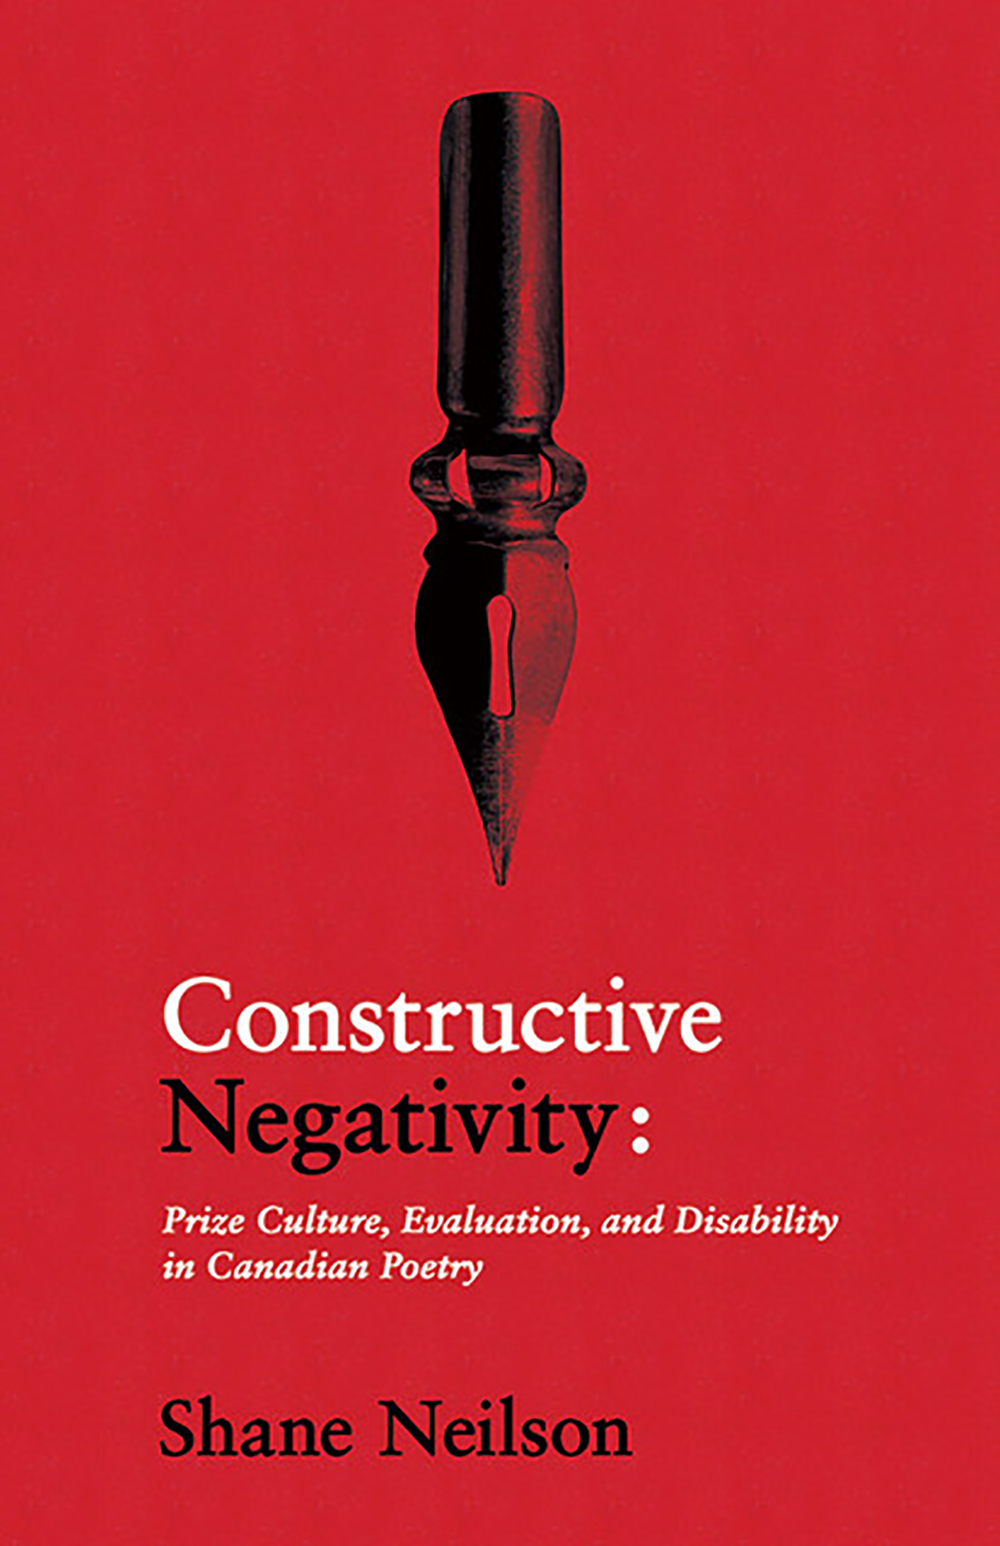 Constructive Negativity: Prize Culture, Evaluation, and Dis/ability in Canadian Poetry